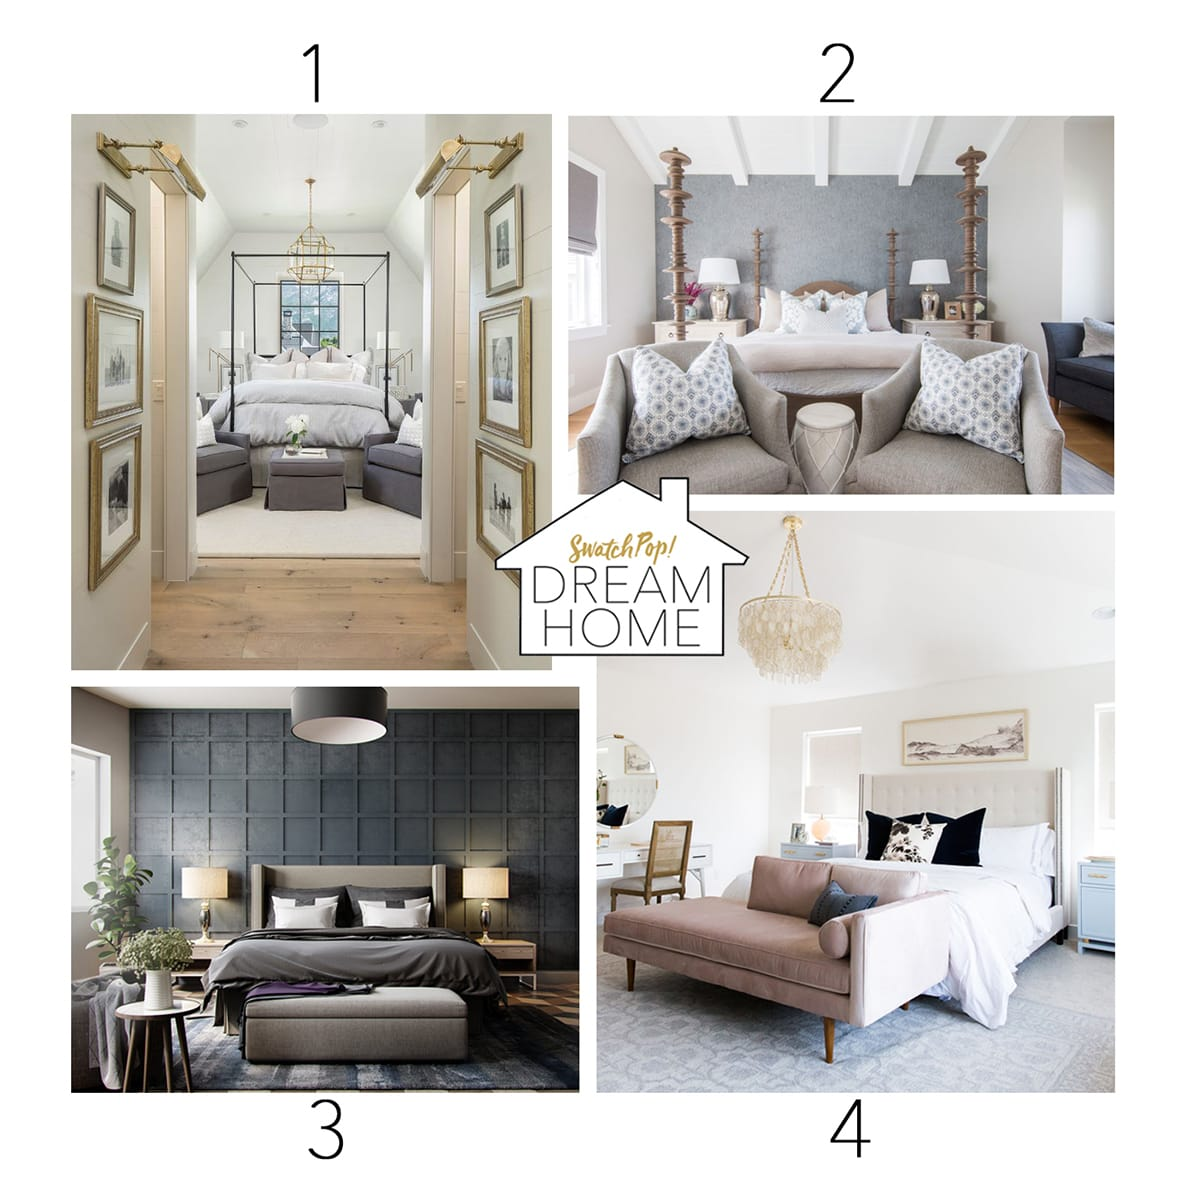 Dream Home - Bedroom